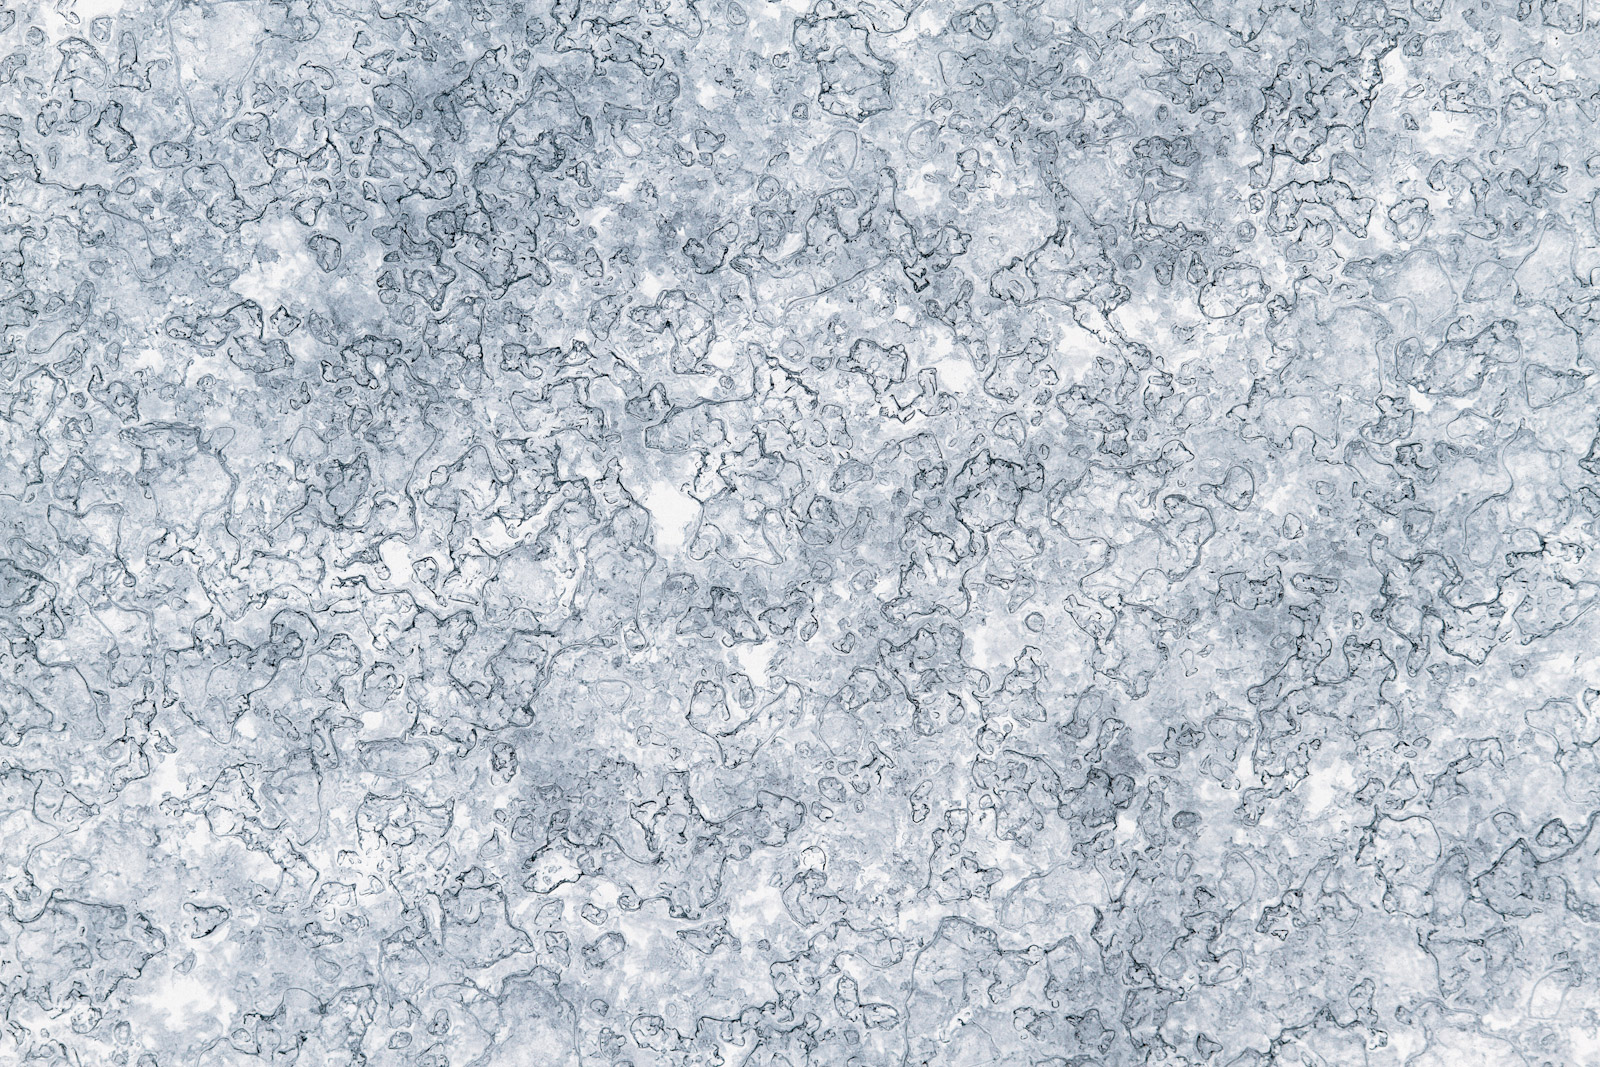 Snow_Grains_02